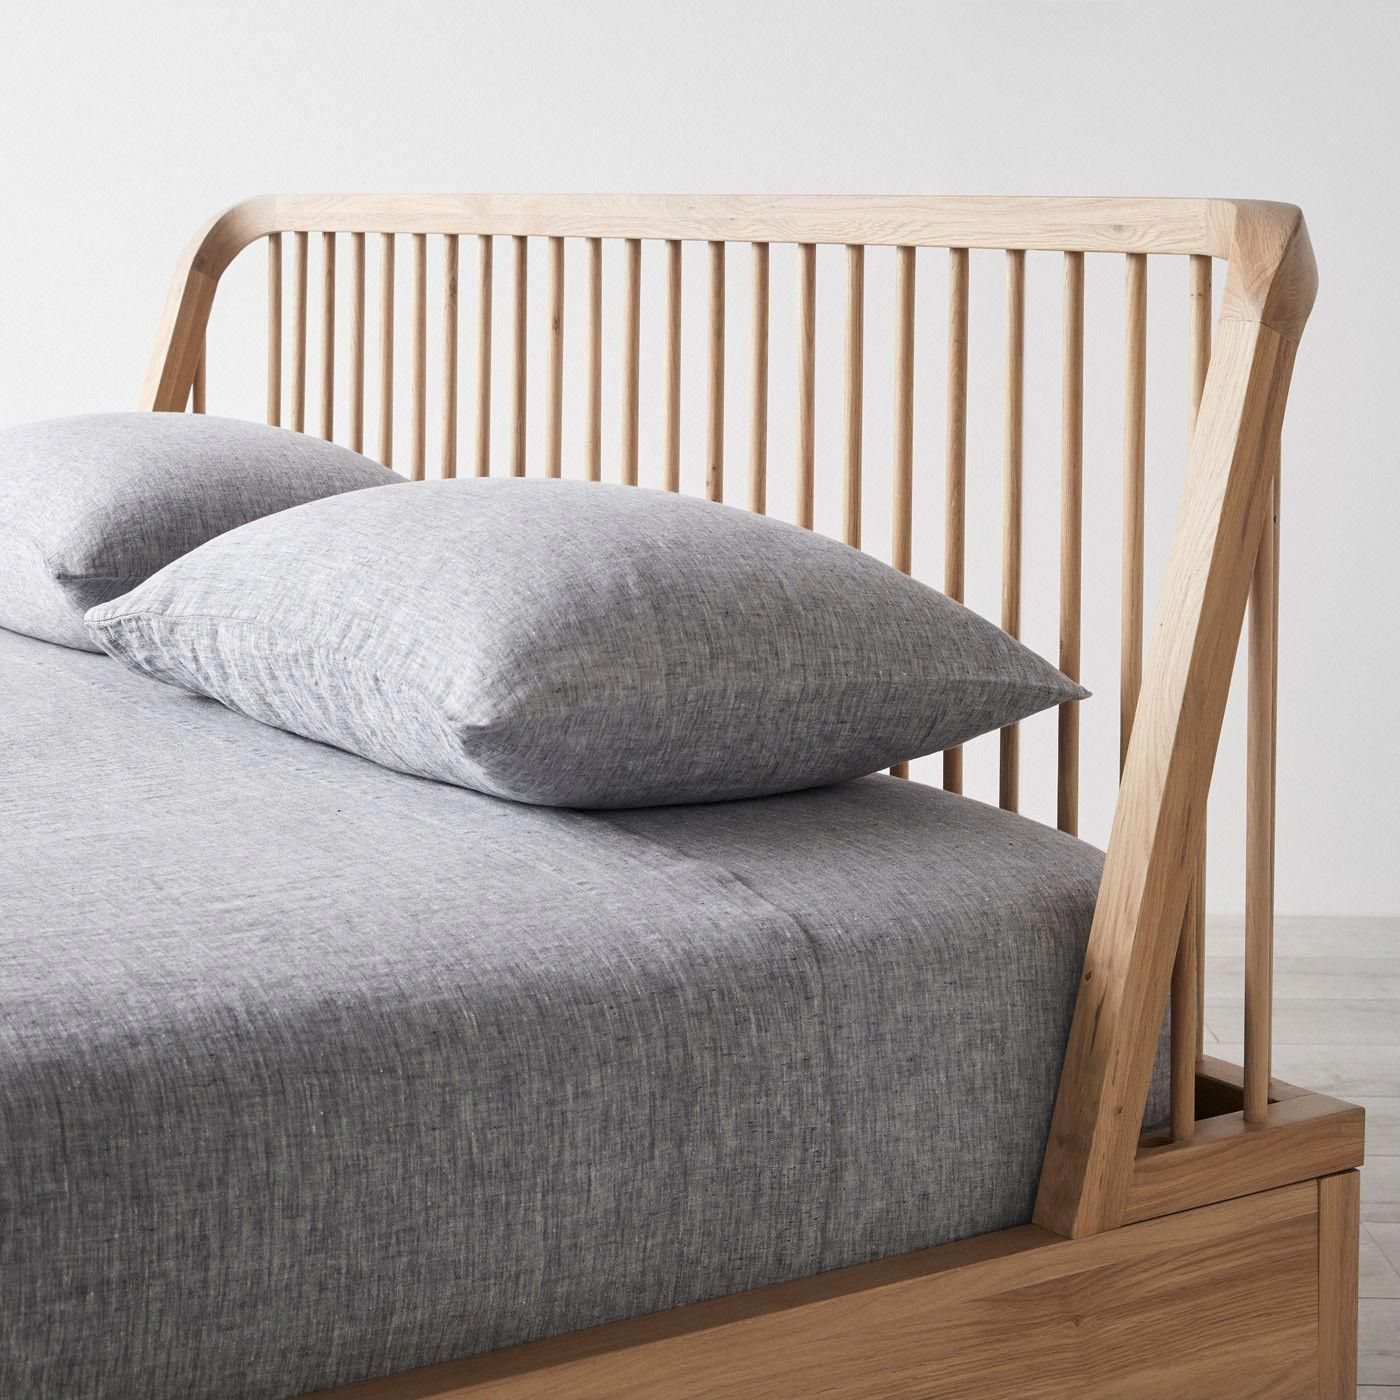 Spindle Oak Bed King Bed Boysbedroom King Oak Sofabeddiy Spindle Woodenbeddiy In 2020 Oak Beds Walnut Bed Minimalist Bed